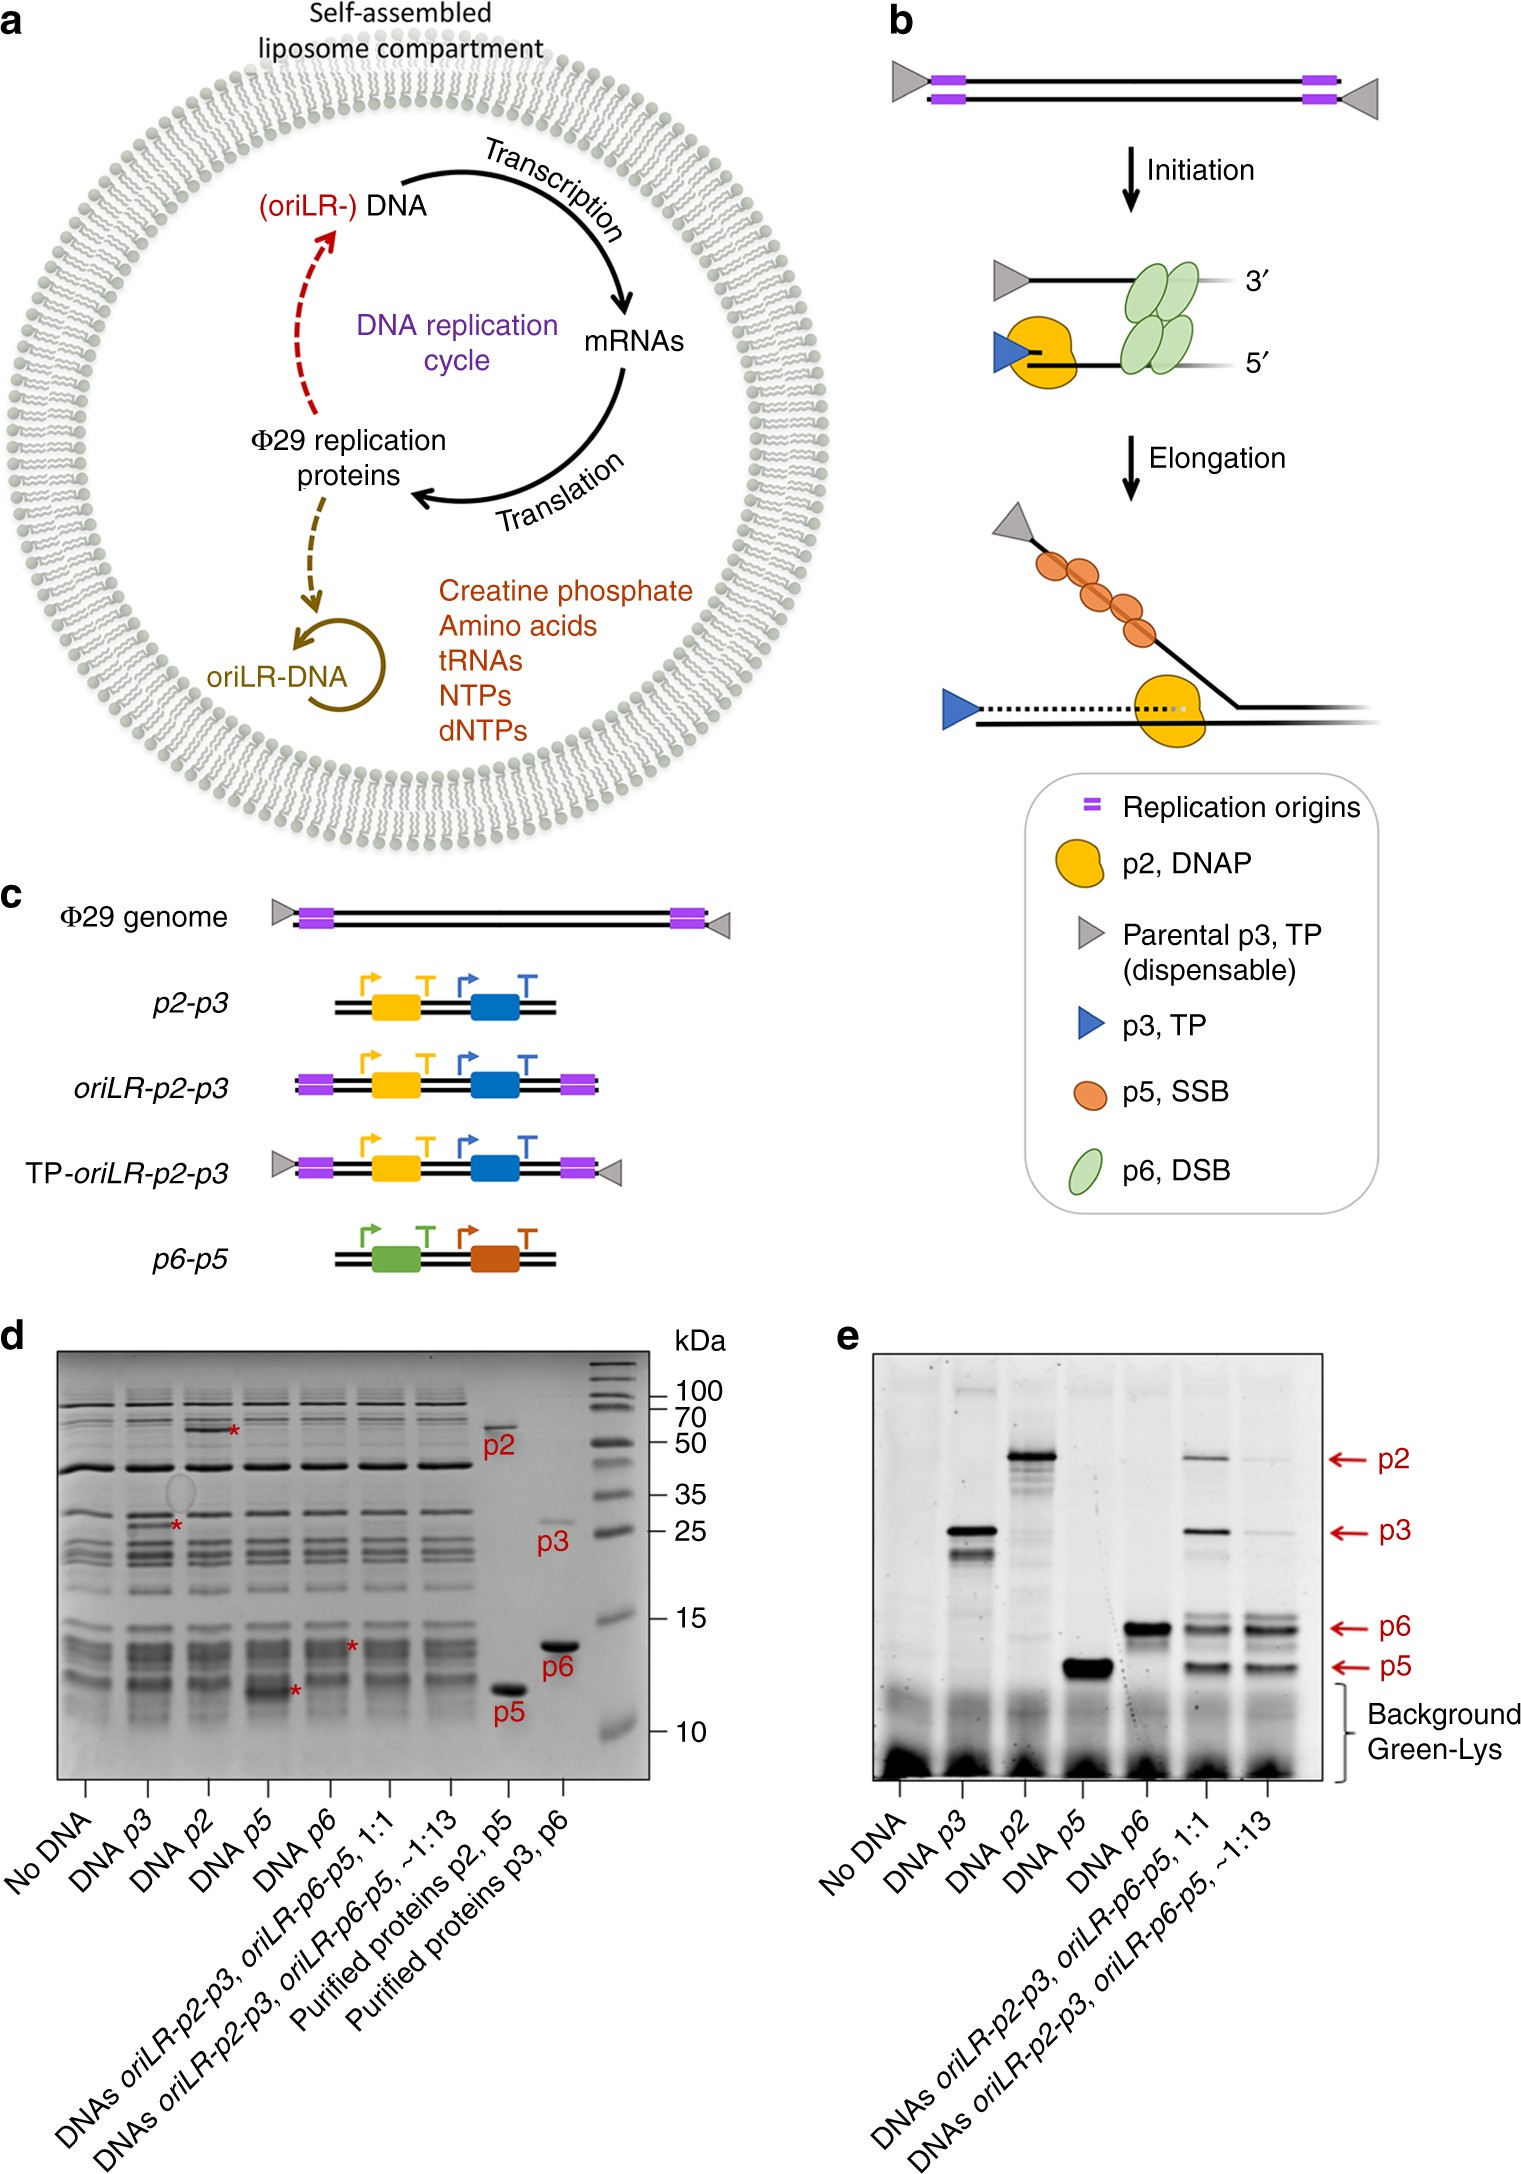 Self Replication Of DNA By Its Encoded Proteins In Liposome